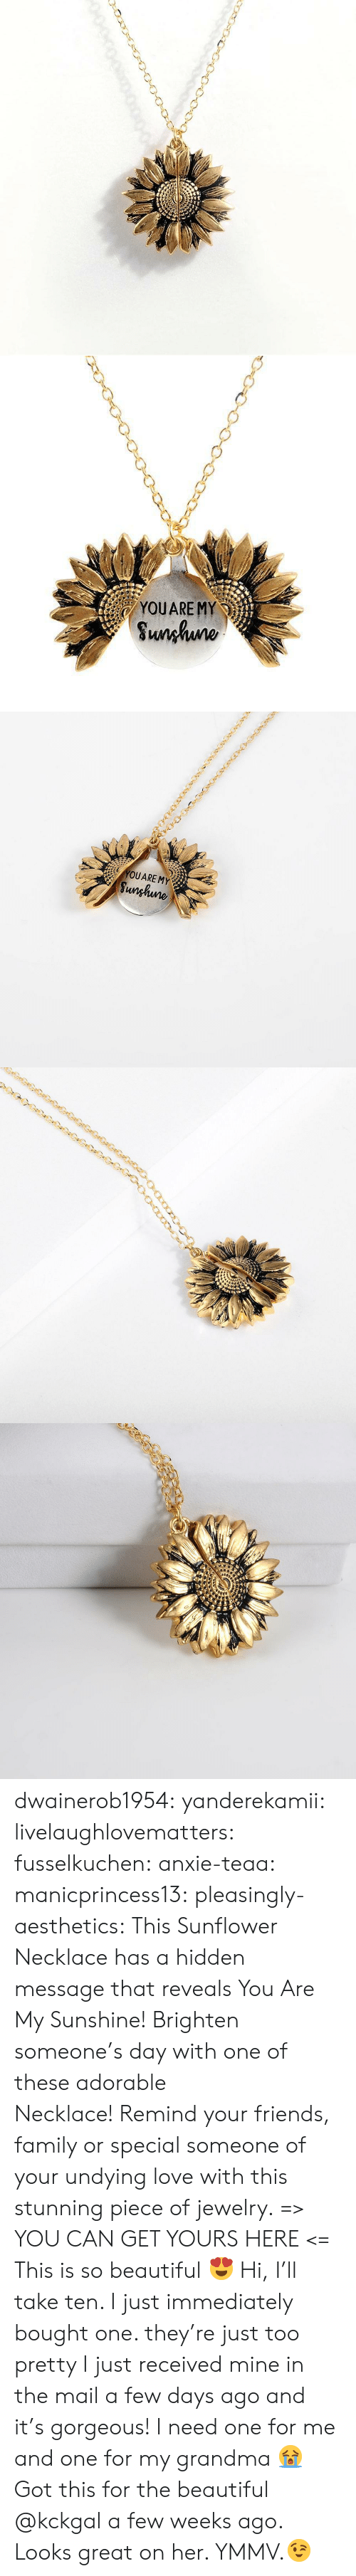 Got This: YOUARE MY  Sunhuno   YOUARE MY  Sunghune dwainerob1954:  yanderekamii:  livelaughlovematters:  fusselkuchen: anxie-teaa:   manicprincess13:   pleasingly-aesthetics:  This Sunflower Necklace has a hidden message that reveals You Are My Sunshine! Brighten someone's day with one of these adorable Necklace! Remind your friends, family or special someone of your undying love with this stunning piece of jewelry. => YOU CAN GET YOURS HERE <=   This is so beautiful 😍    Hi, I'll take ten.    I just immediately bought one. they're just too pretty   I just received mine in the mail a few days ago and it's gorgeous!  I need one for me and one for my grandma 😭  Got this for the beautiful @kckgal a few weeks ago.  Looks great on her. YMMV.😉